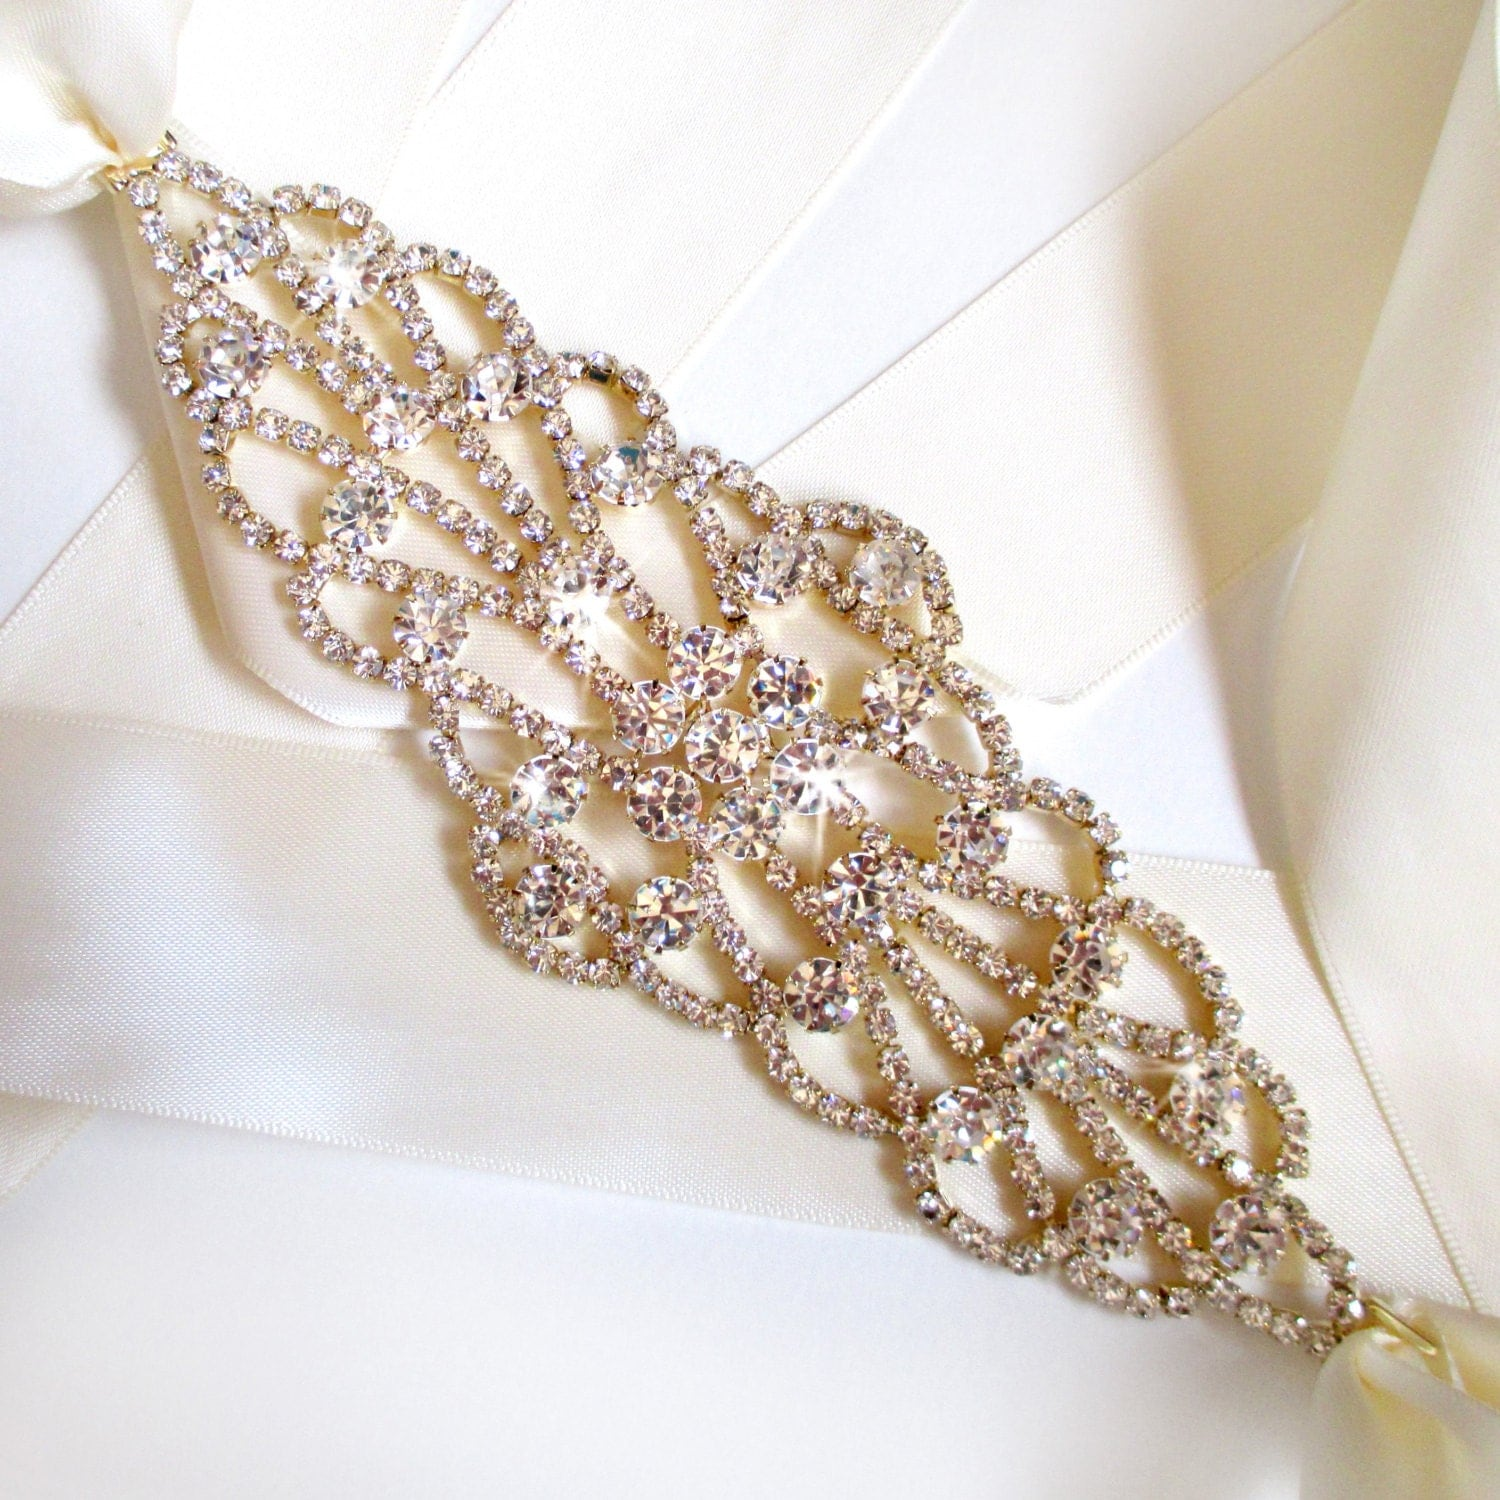 Extra wide gold wedding dress sash rhinestone encrusted for Wedding dress sash with rhinestones